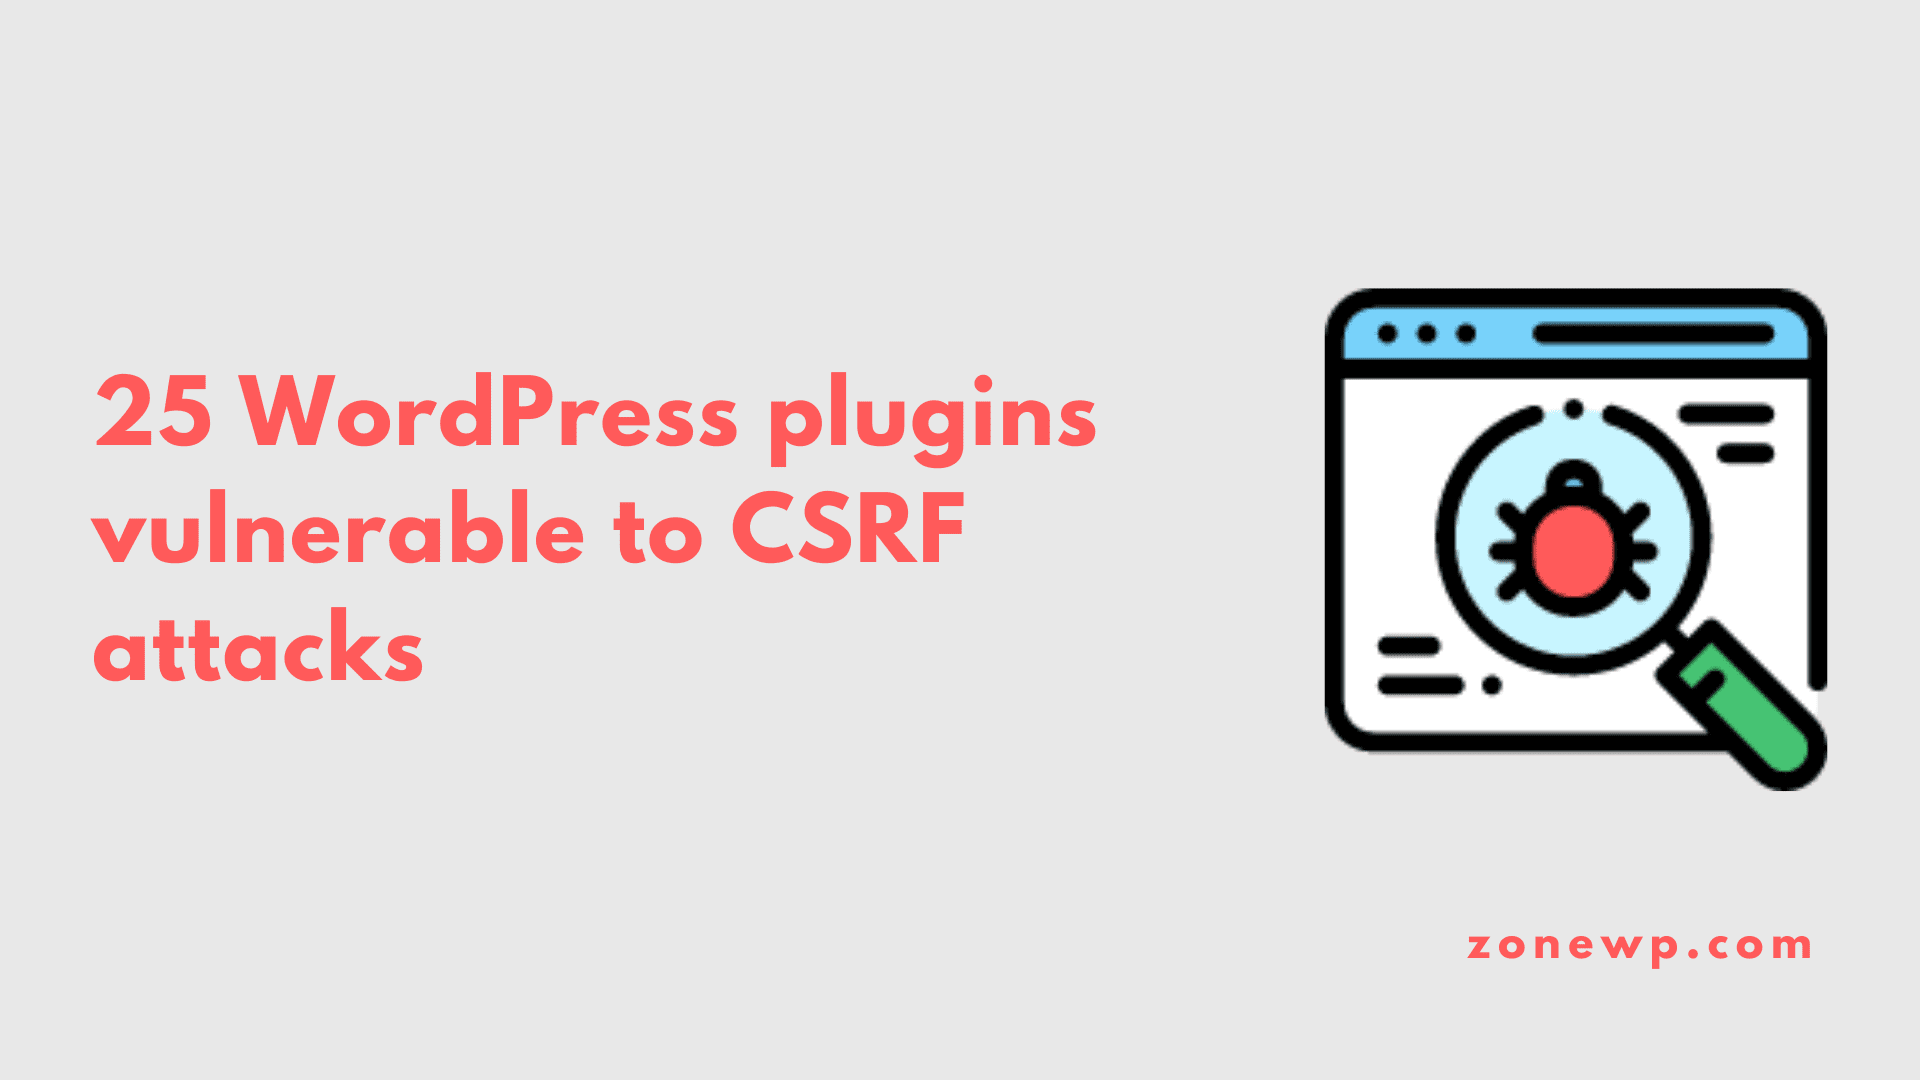 25 WordPress plugins vulnerable to CSRF attacks